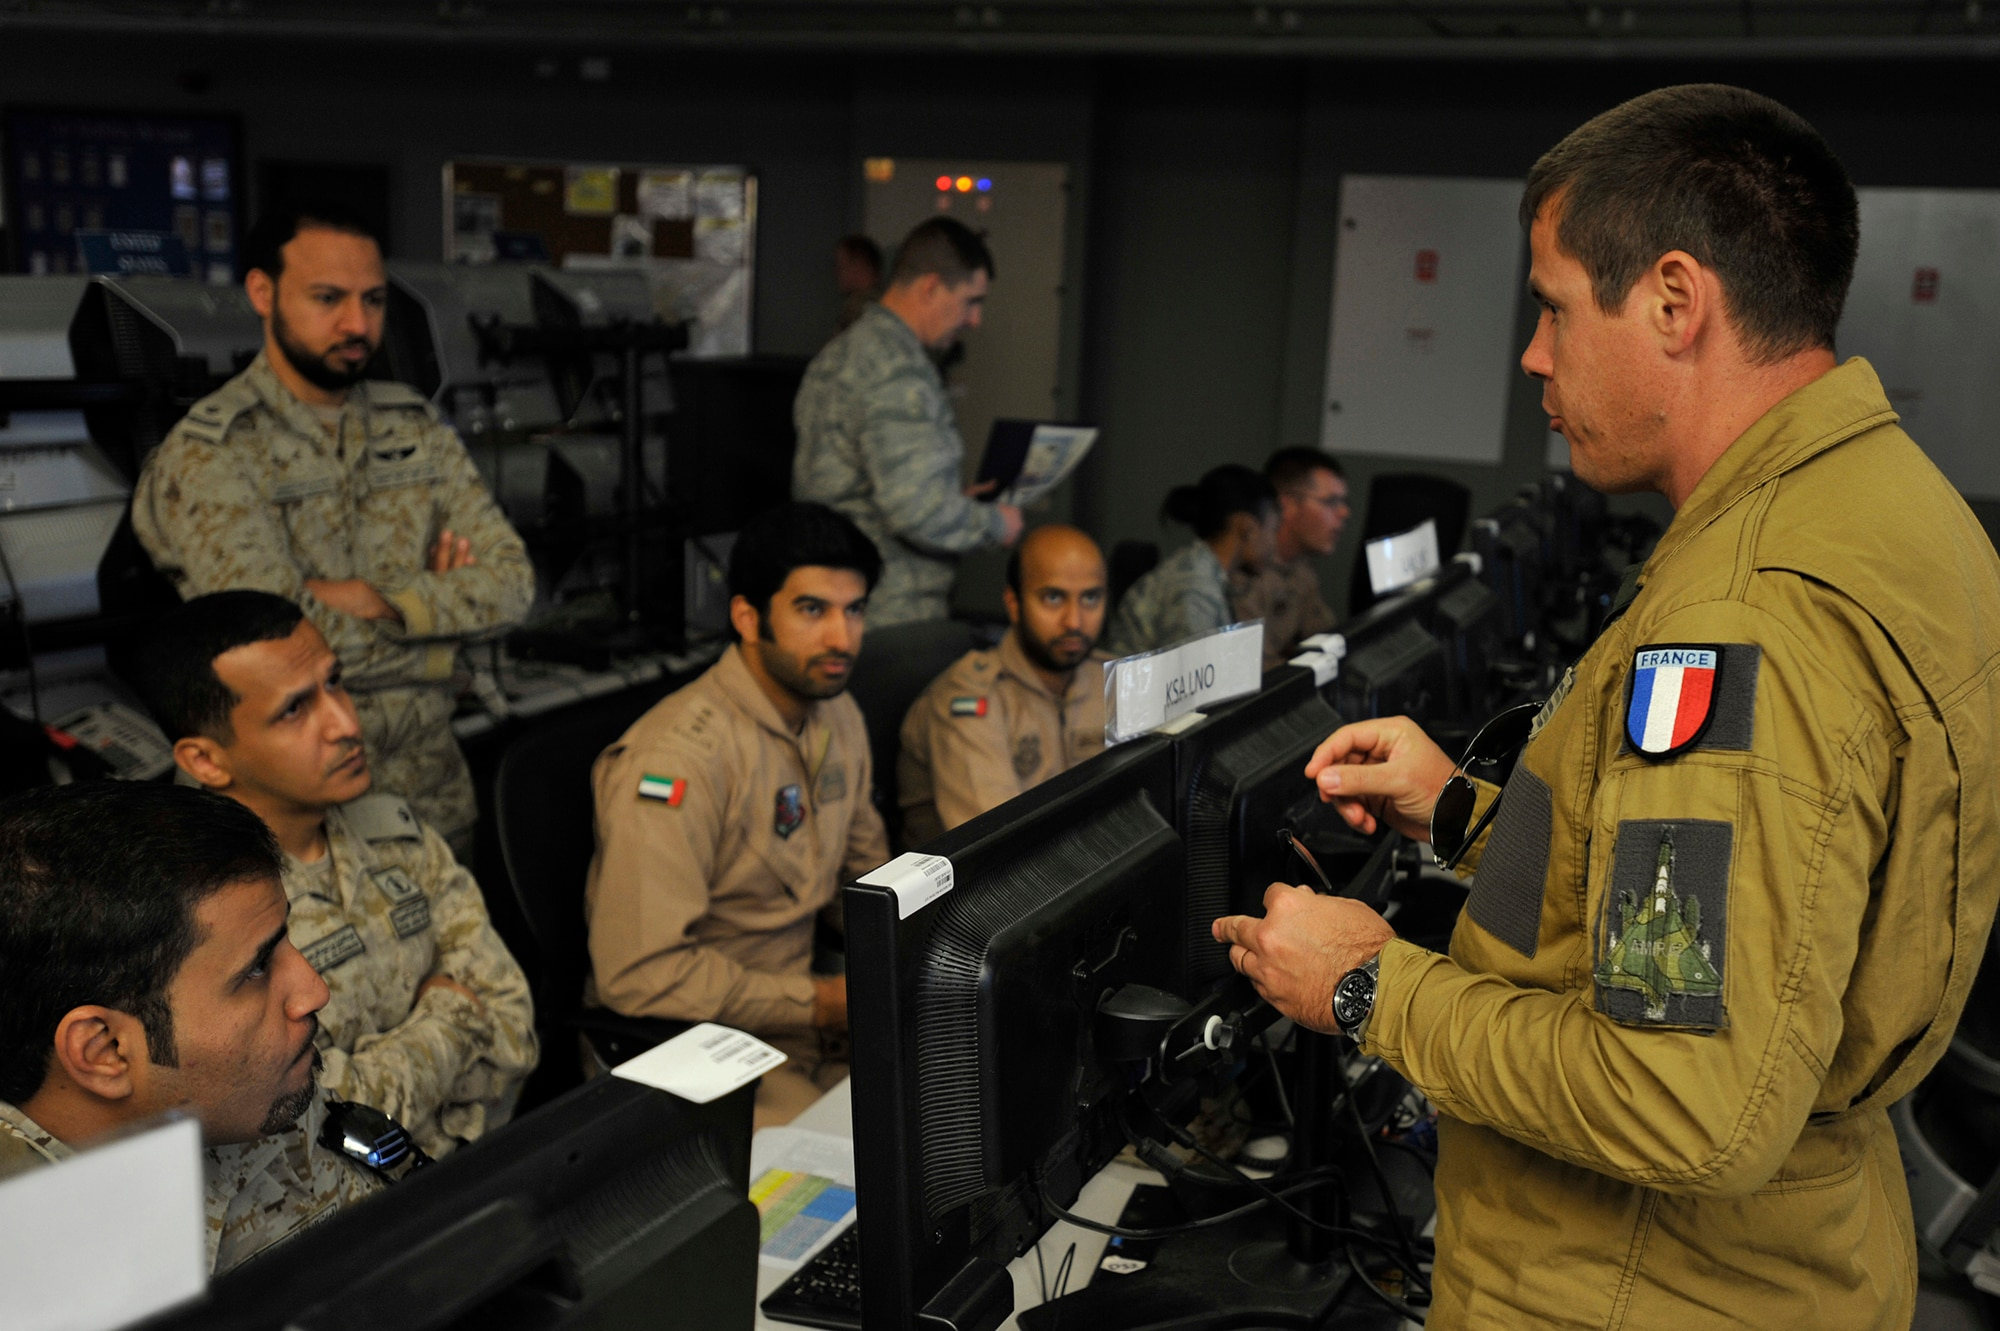 Armee De l'Air Lt. Col. Eric Konietzko, Course Director, briefs the Liaison Officer (LNO) students during Arabian Gulf Shield, Feb. 3, 2016, in the Combined Air Operations Center, Al Udeid Air Base, Qatar. Arabian Gulf Shield is the culminating exercise for the Gulf Cooperation Council (GCC) LNO Program. The exercise is designed to exercise GCC LNO procedures and connectivity to host nation Air Operations Centers which improves US-GCC interoperability. (U.S. Air Force photo by Master Sgt. Joshua Strang)